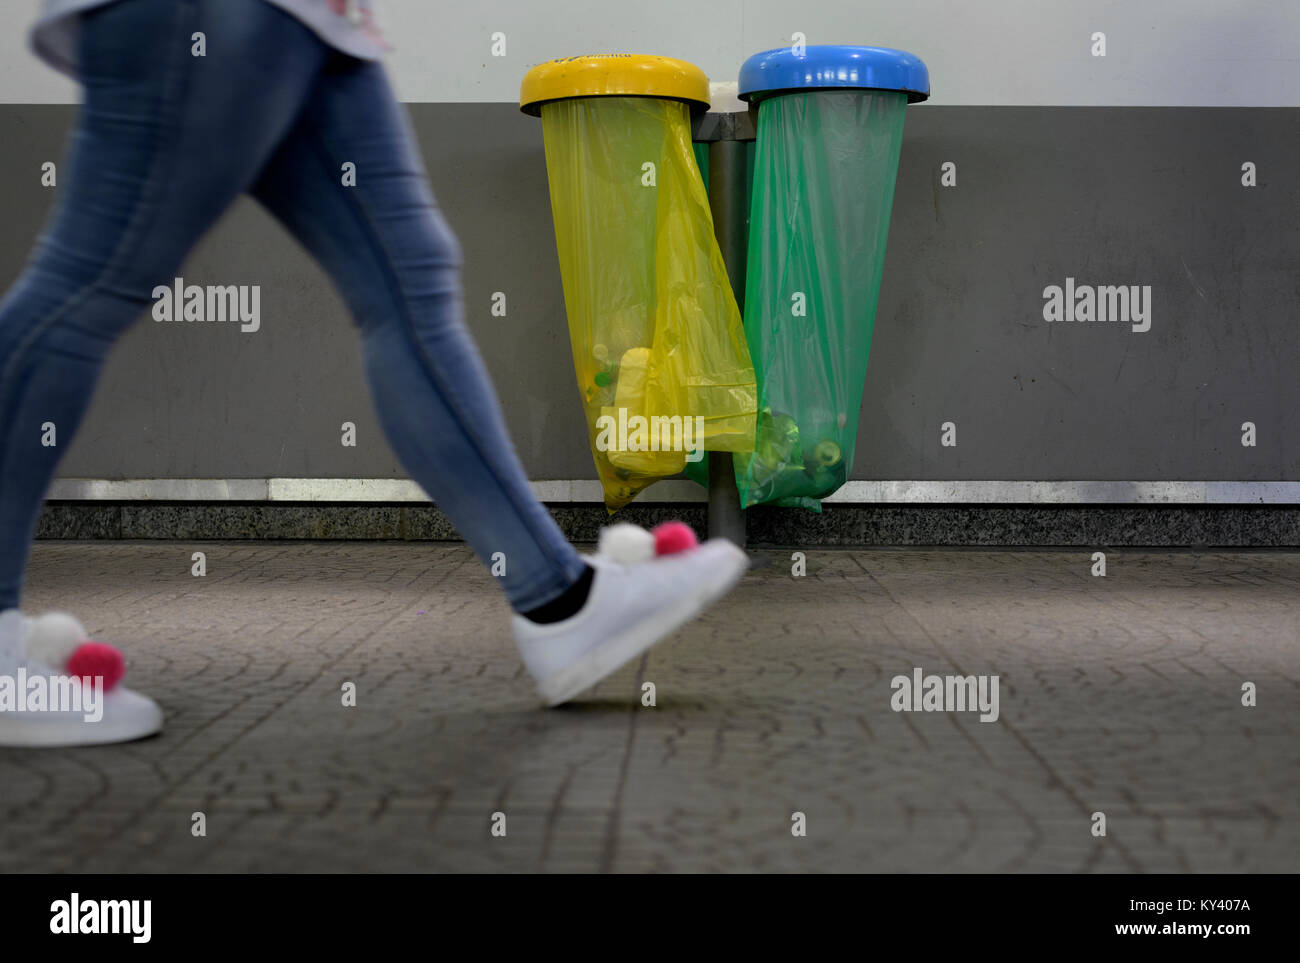 pom poms shoes walks near colored bags of waste - Stock Image